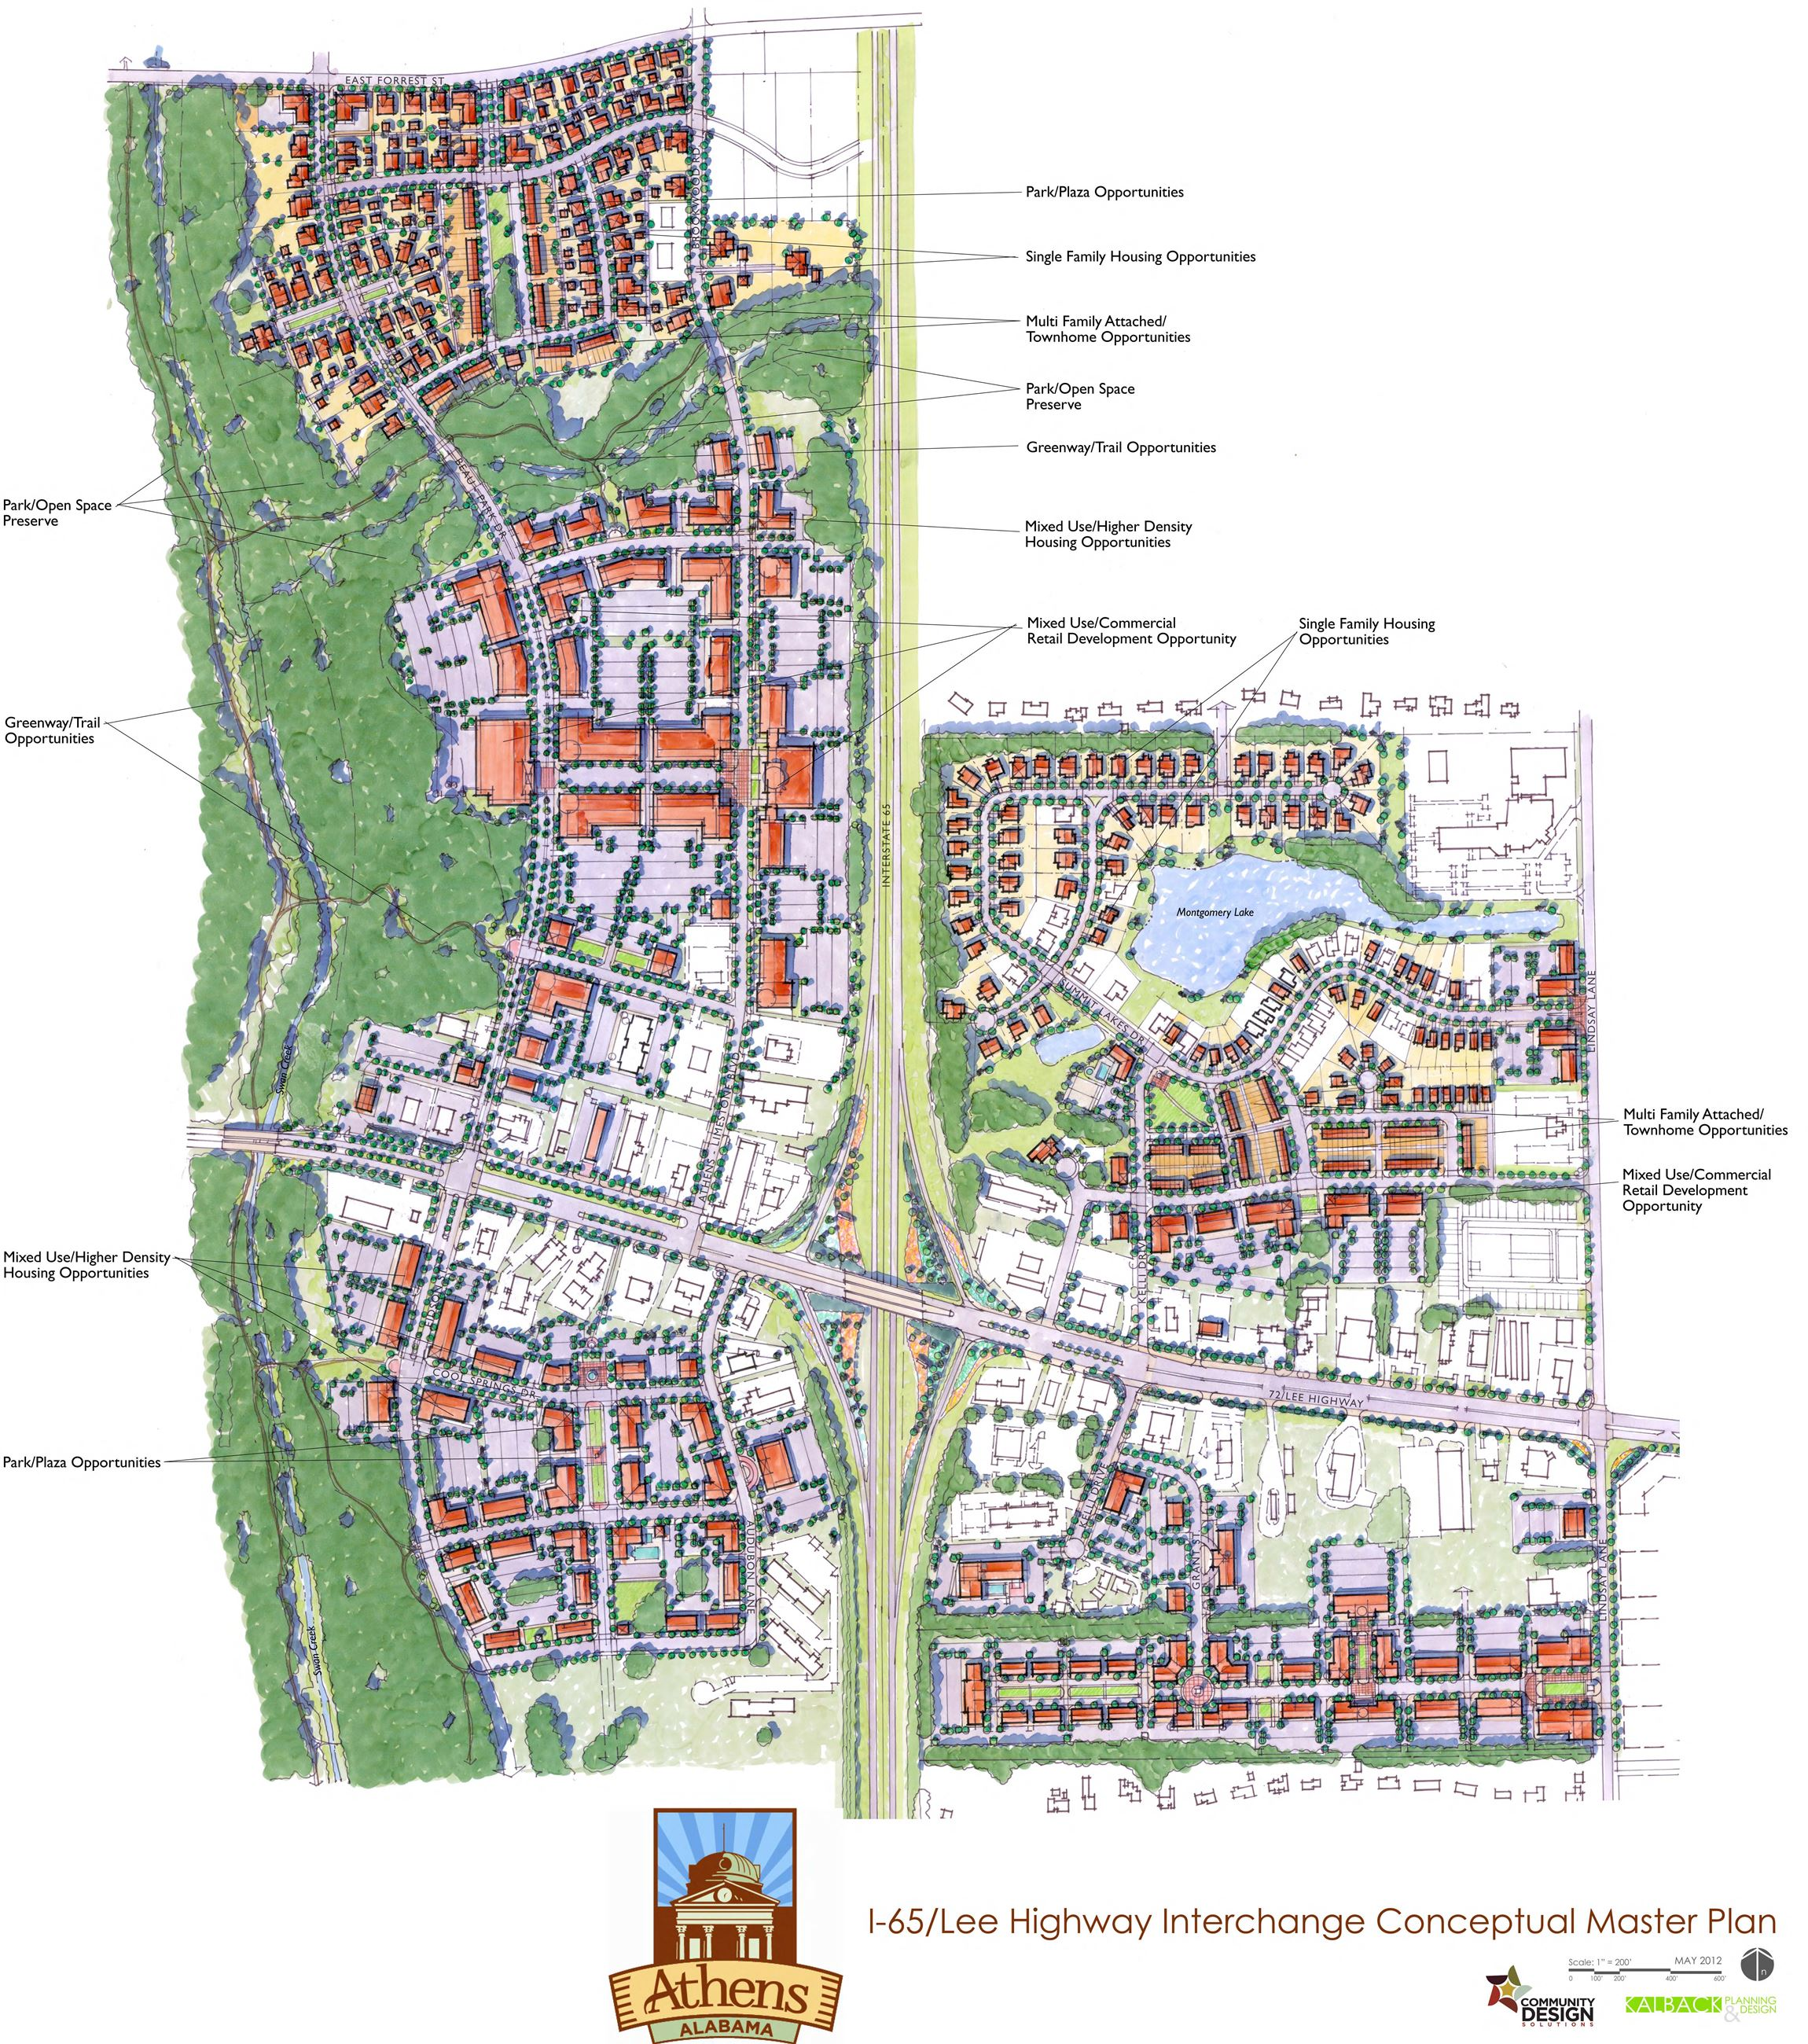 Conceptual Master Plan Map